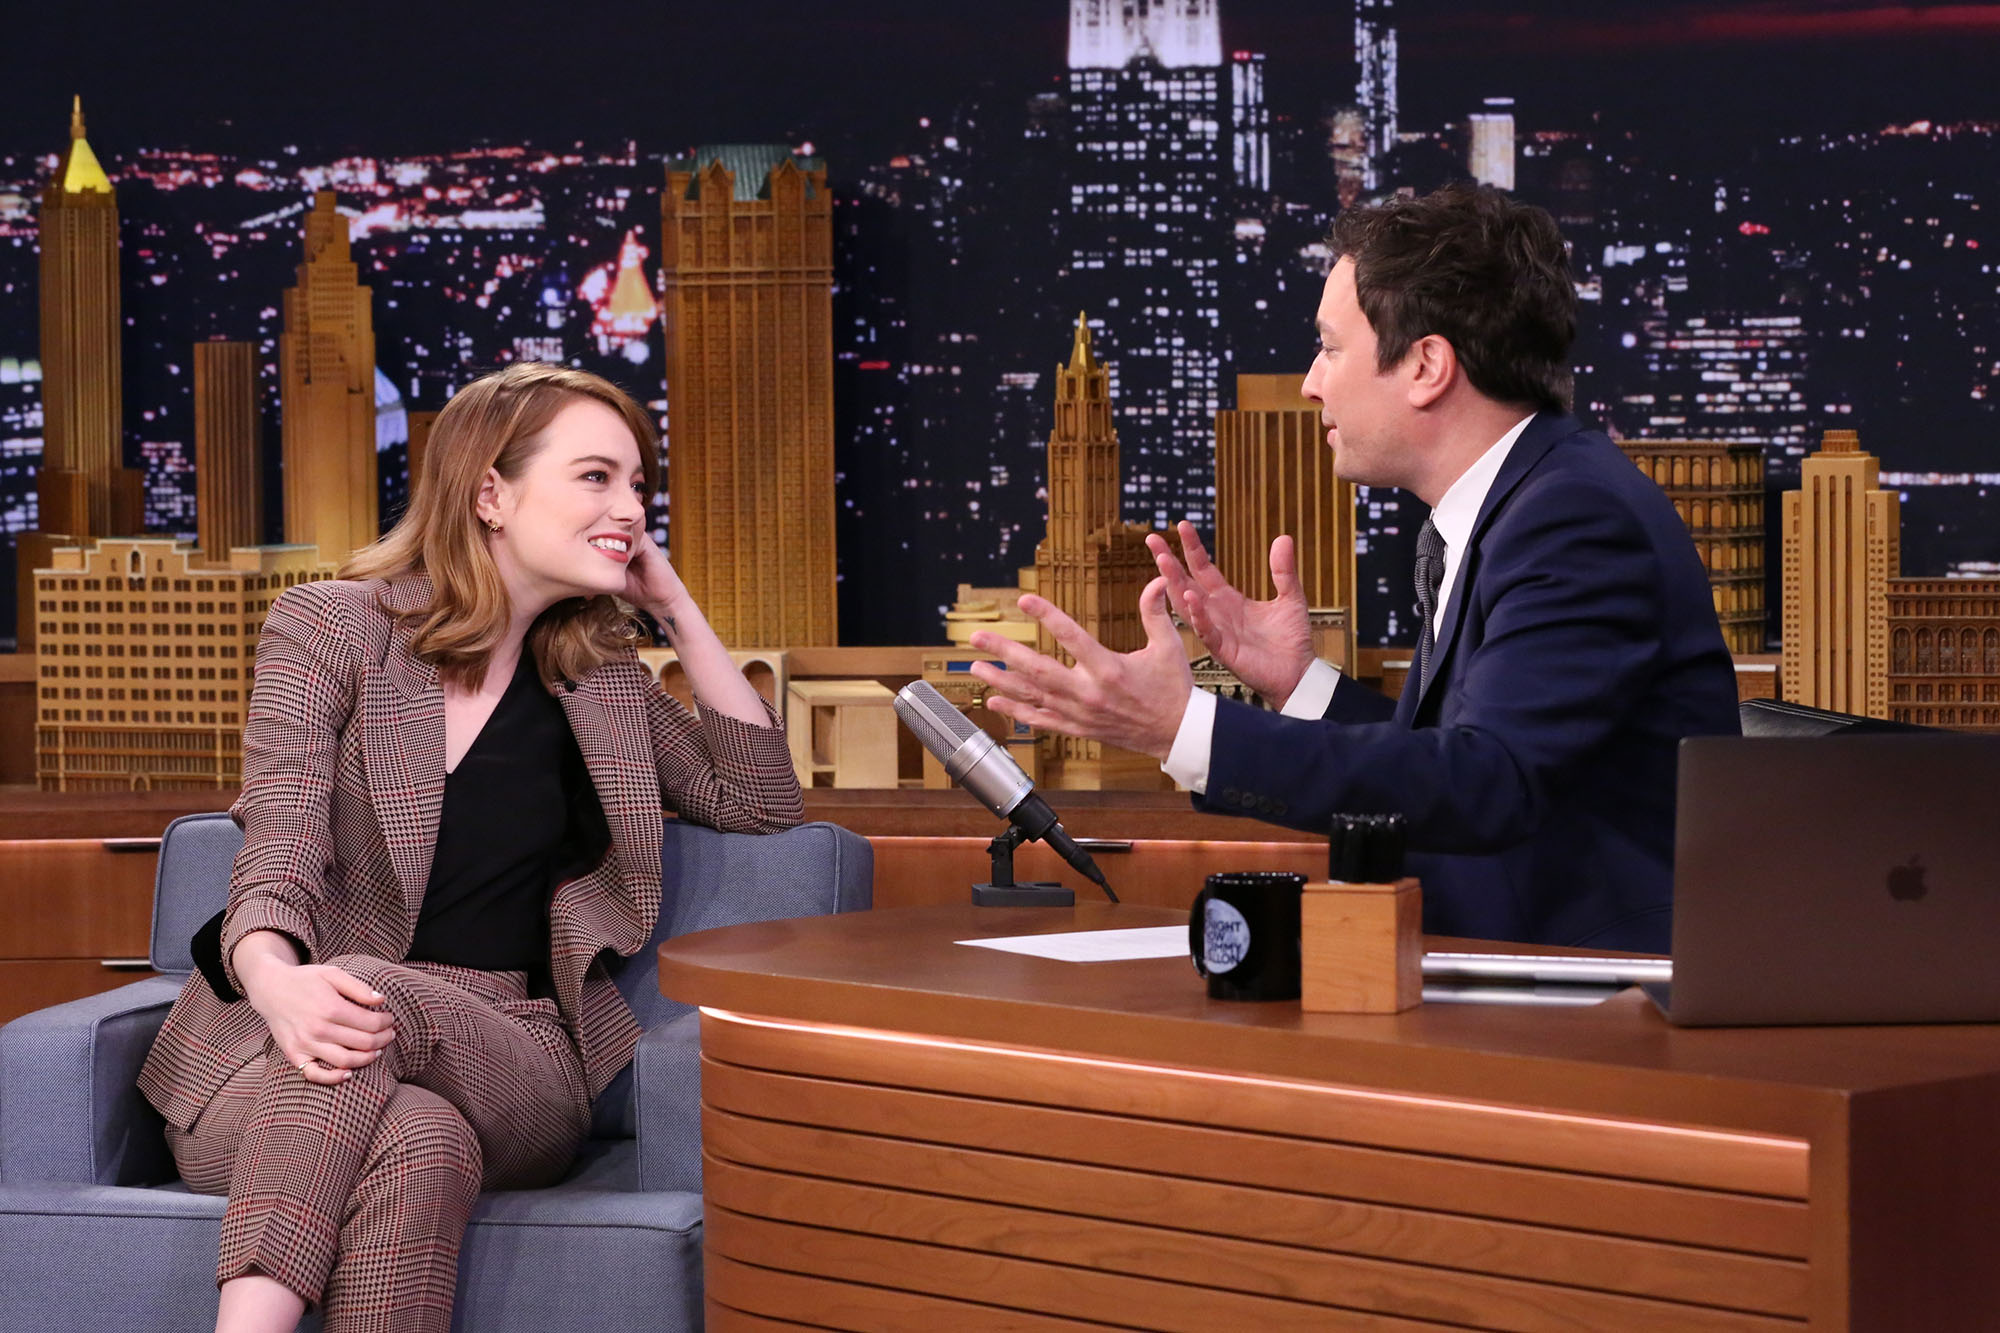 Emma Stone during an interview with 'The Tonight Show' host Jimmy Fallon on December 01, 2016 -- (Photo by: Andrew Lipovsky/NBC/NBCU Photo Bank via Getty Images)